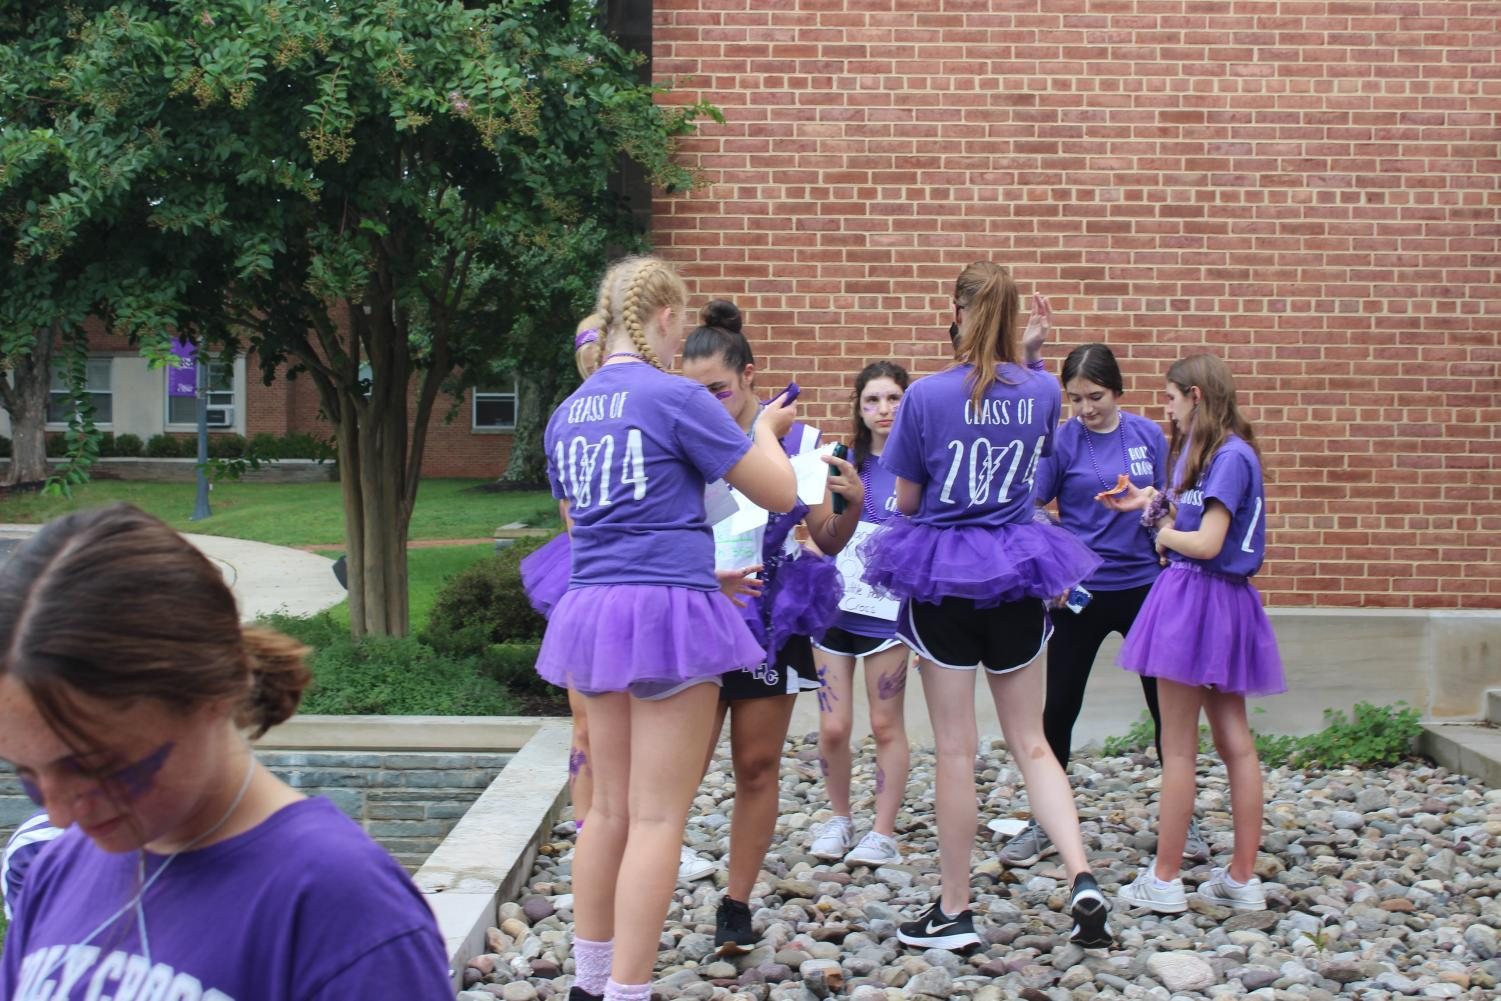 Sophomores taking pictures with their purple outfits before the HC Day events.